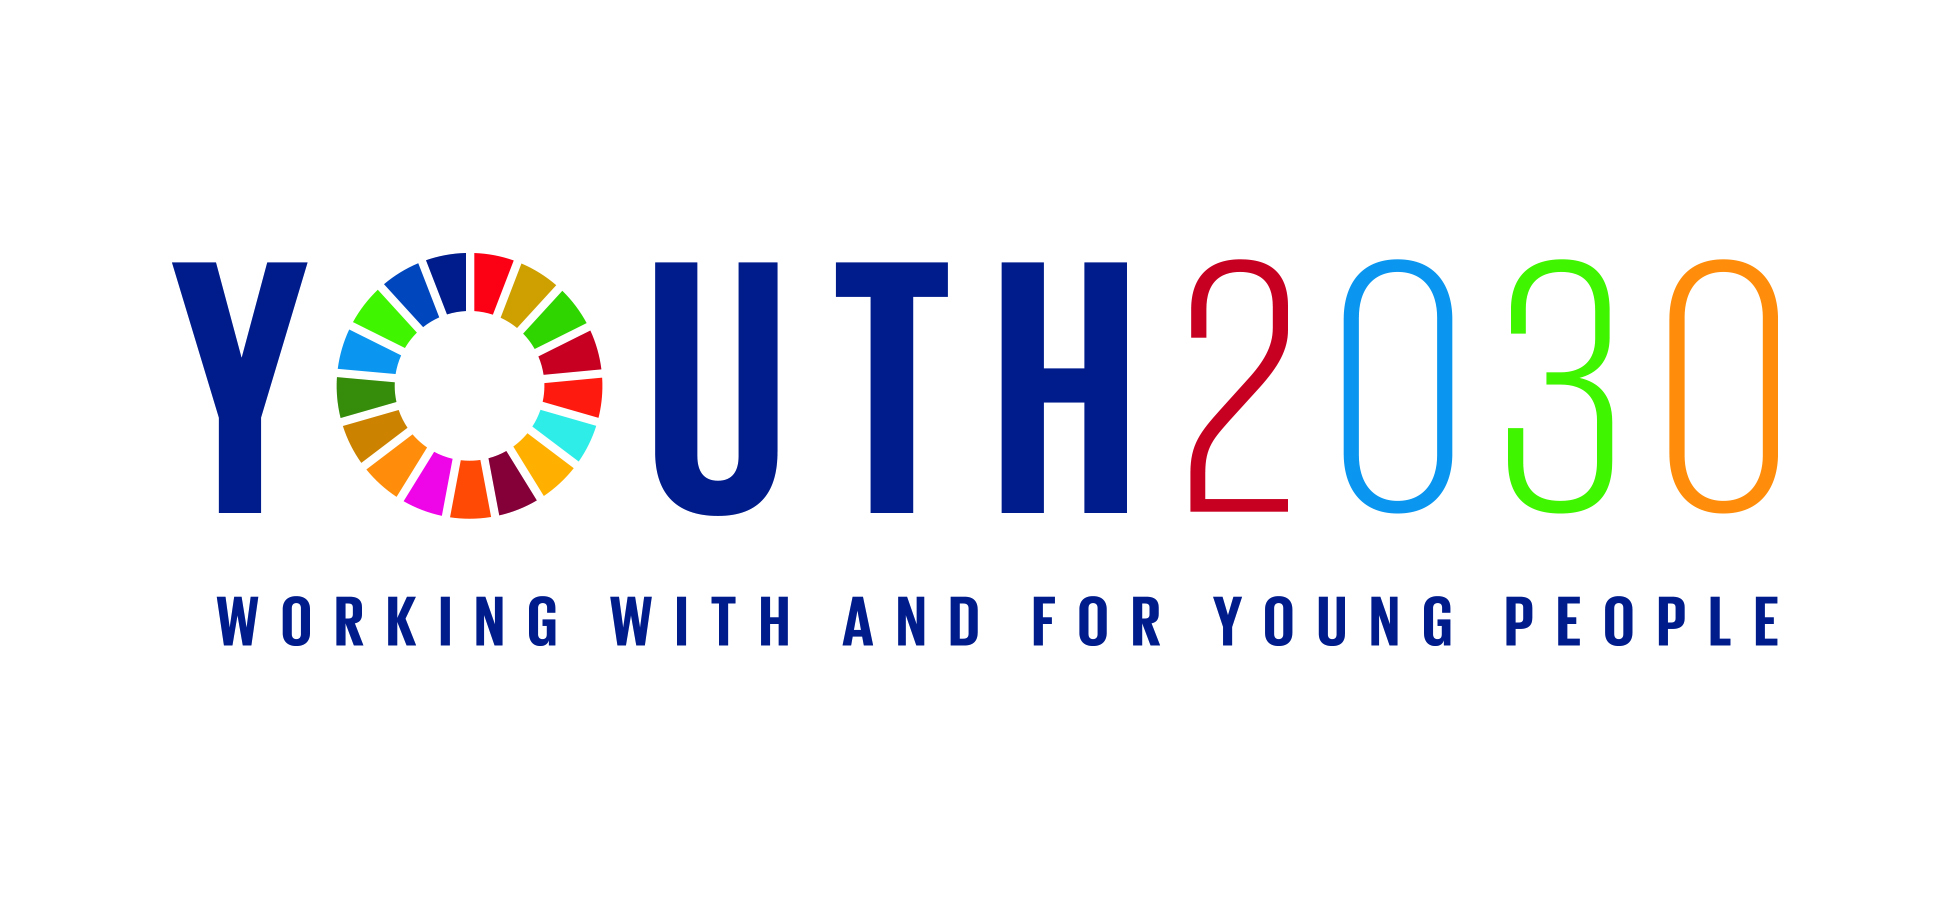 18-00080_UN_Youth_Strategy_Horizontal_Tag_CMYK.jpg